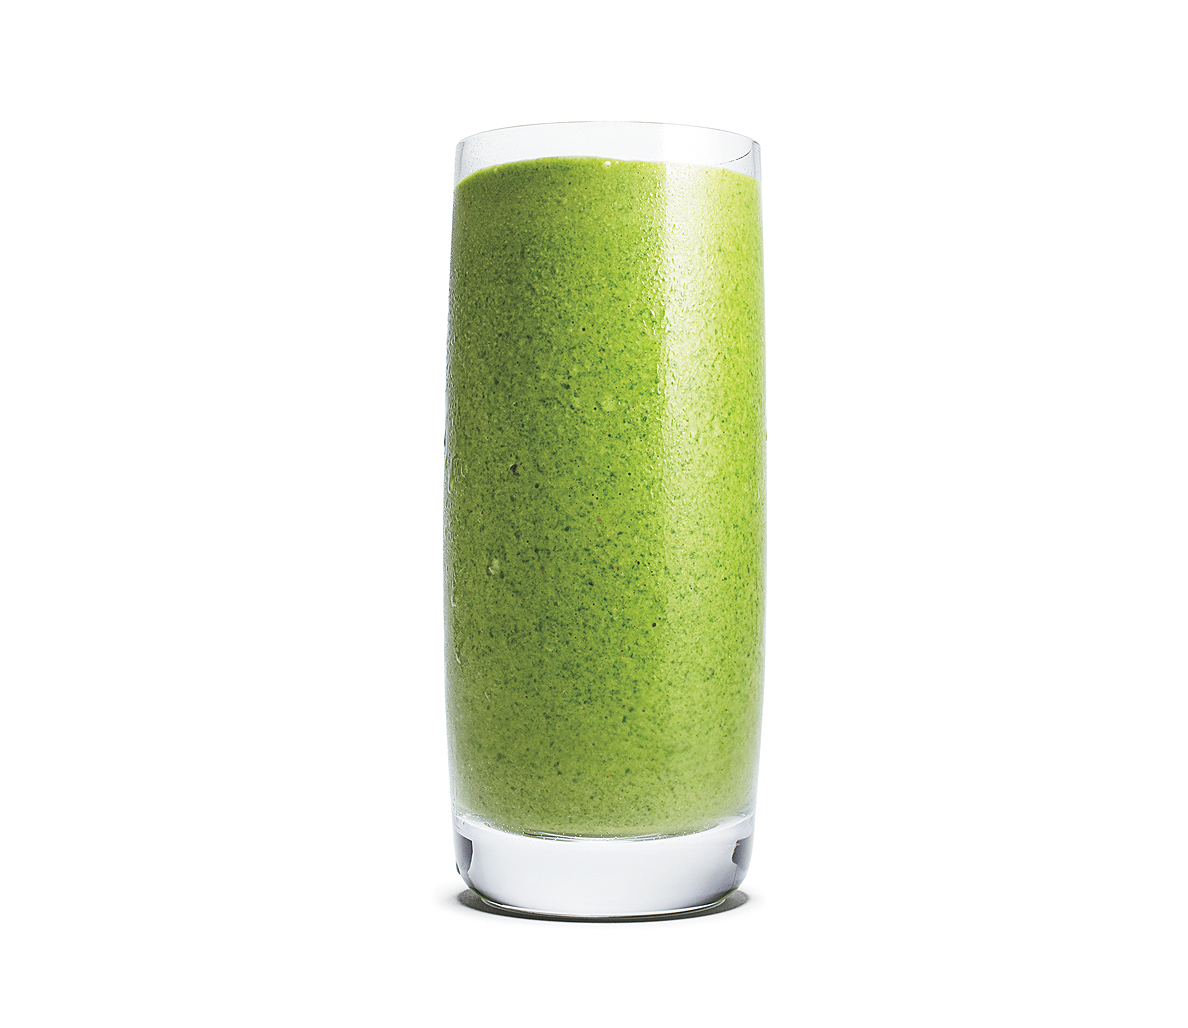 10 Delicious Green Smoothies That Fight Weight Gain